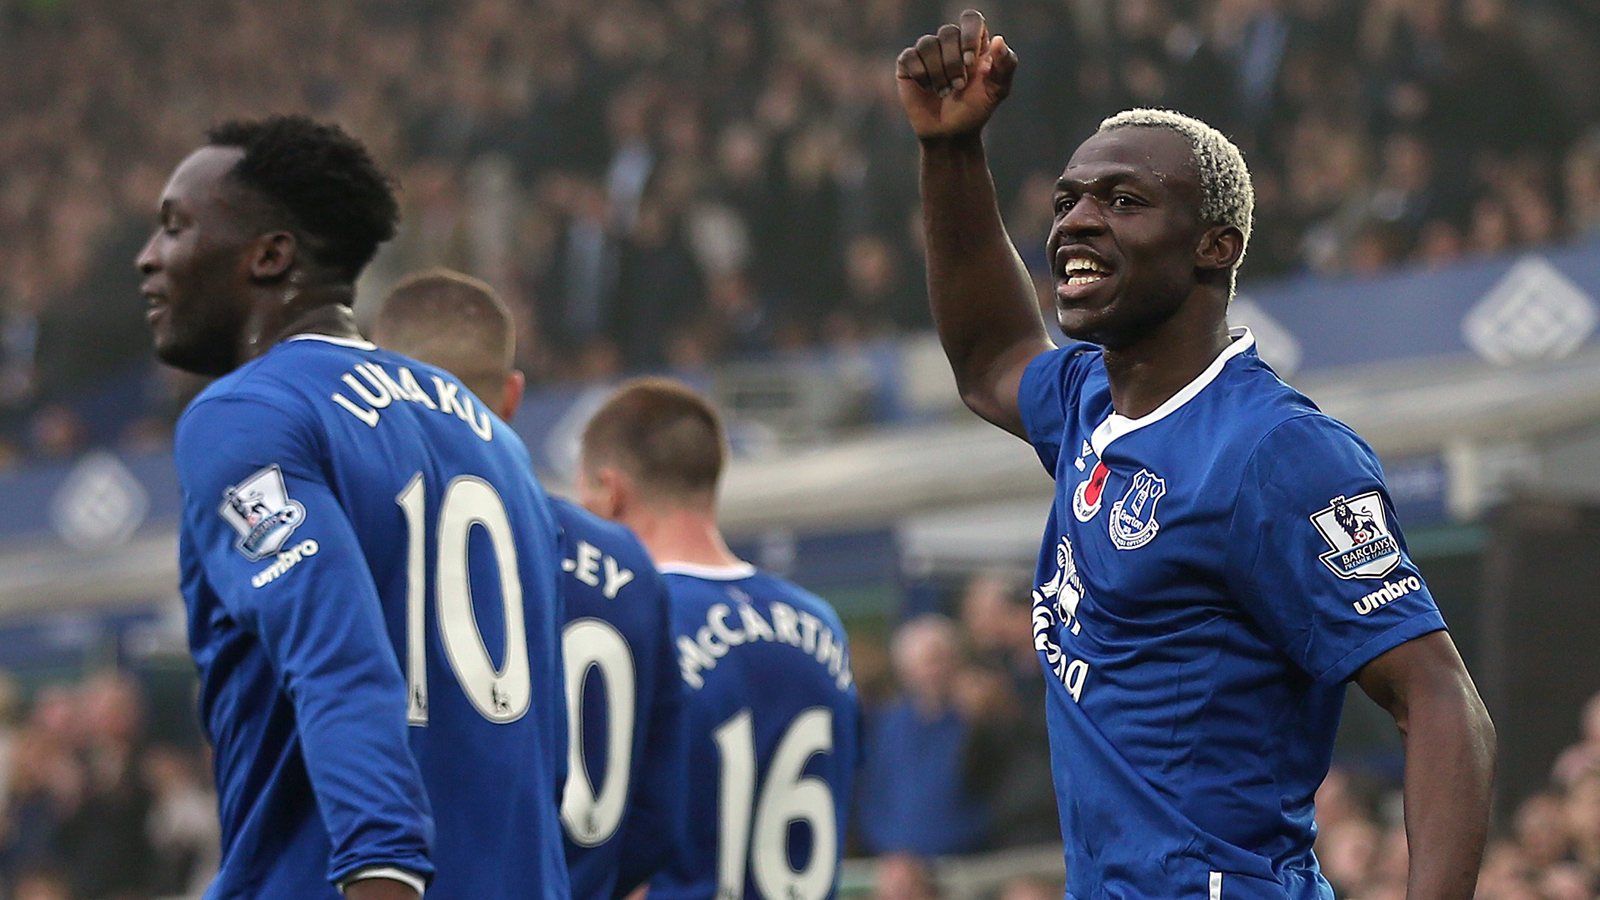 Kone nets hat trick as Everton hit Sunderland for six in giant win